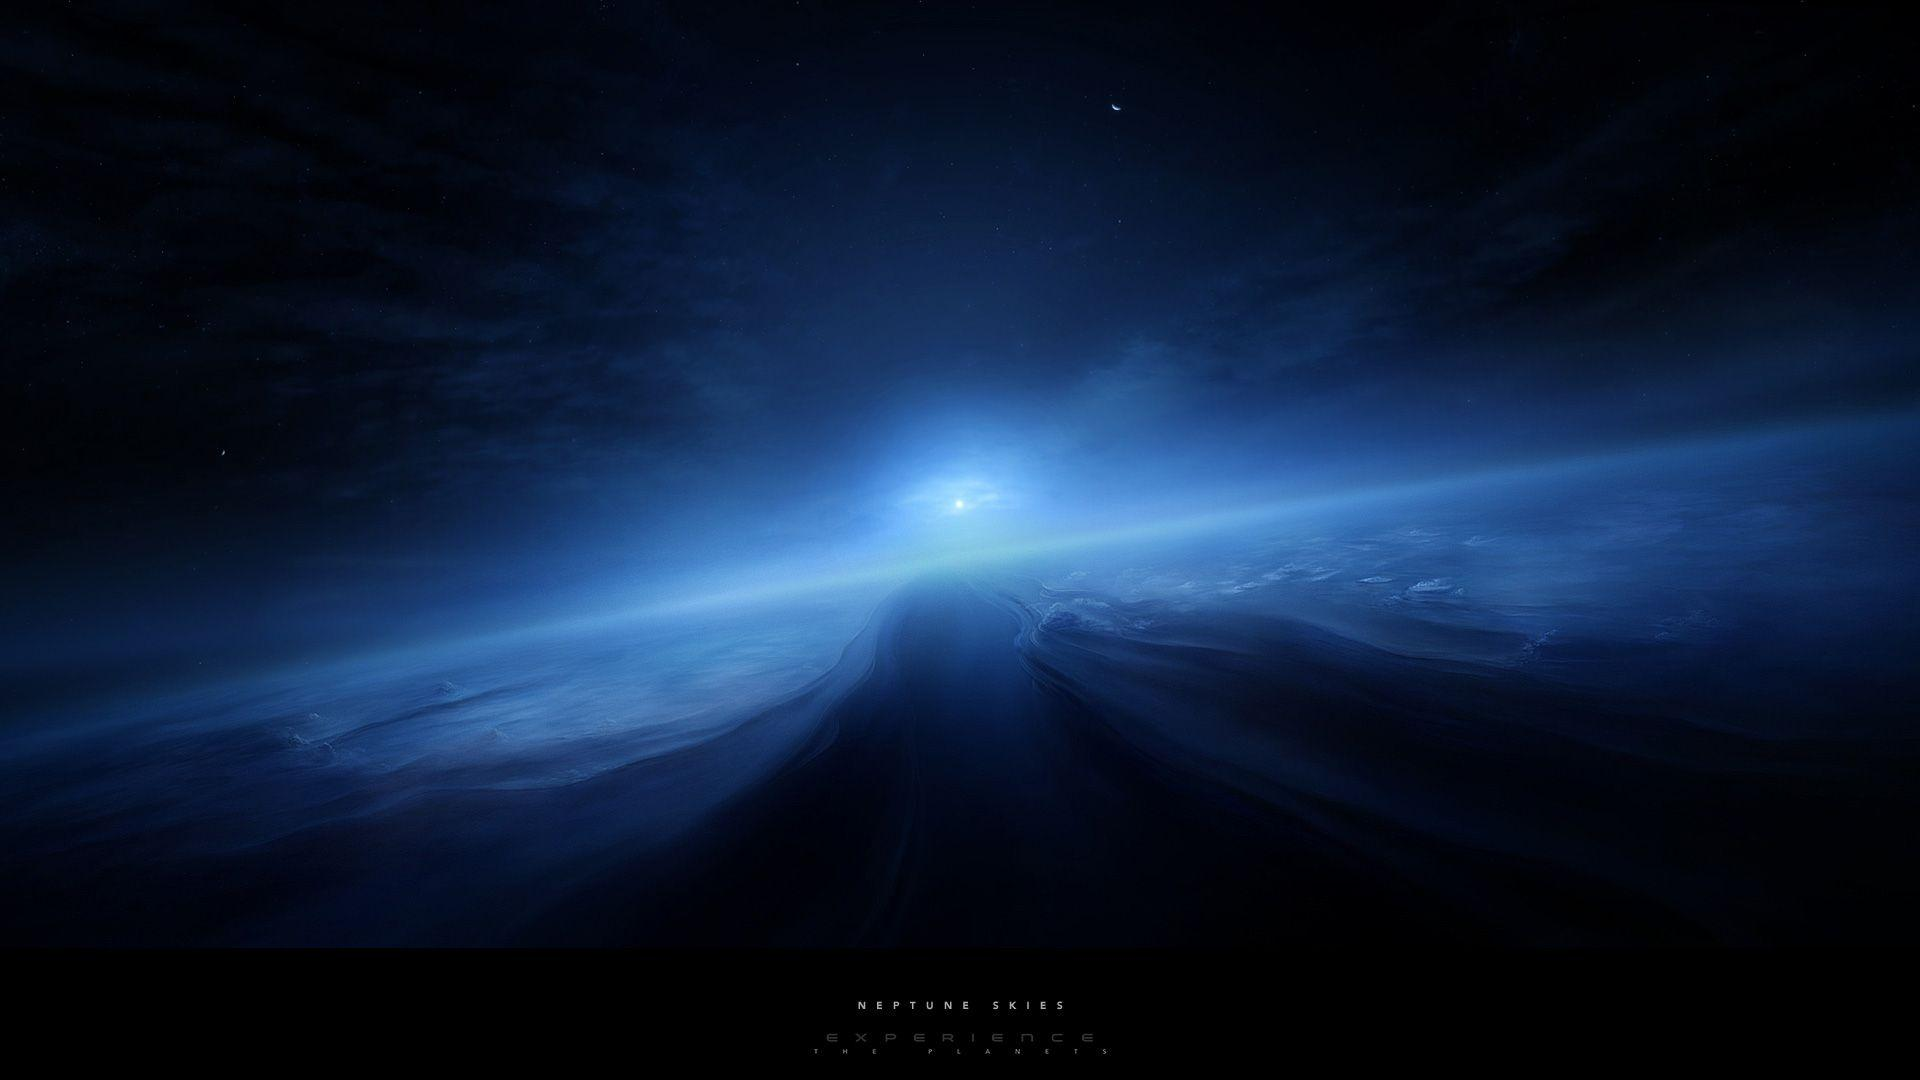 Neptune Hd Cool 7 HD Wallpapers | Things to Sketch | Pinterest ...